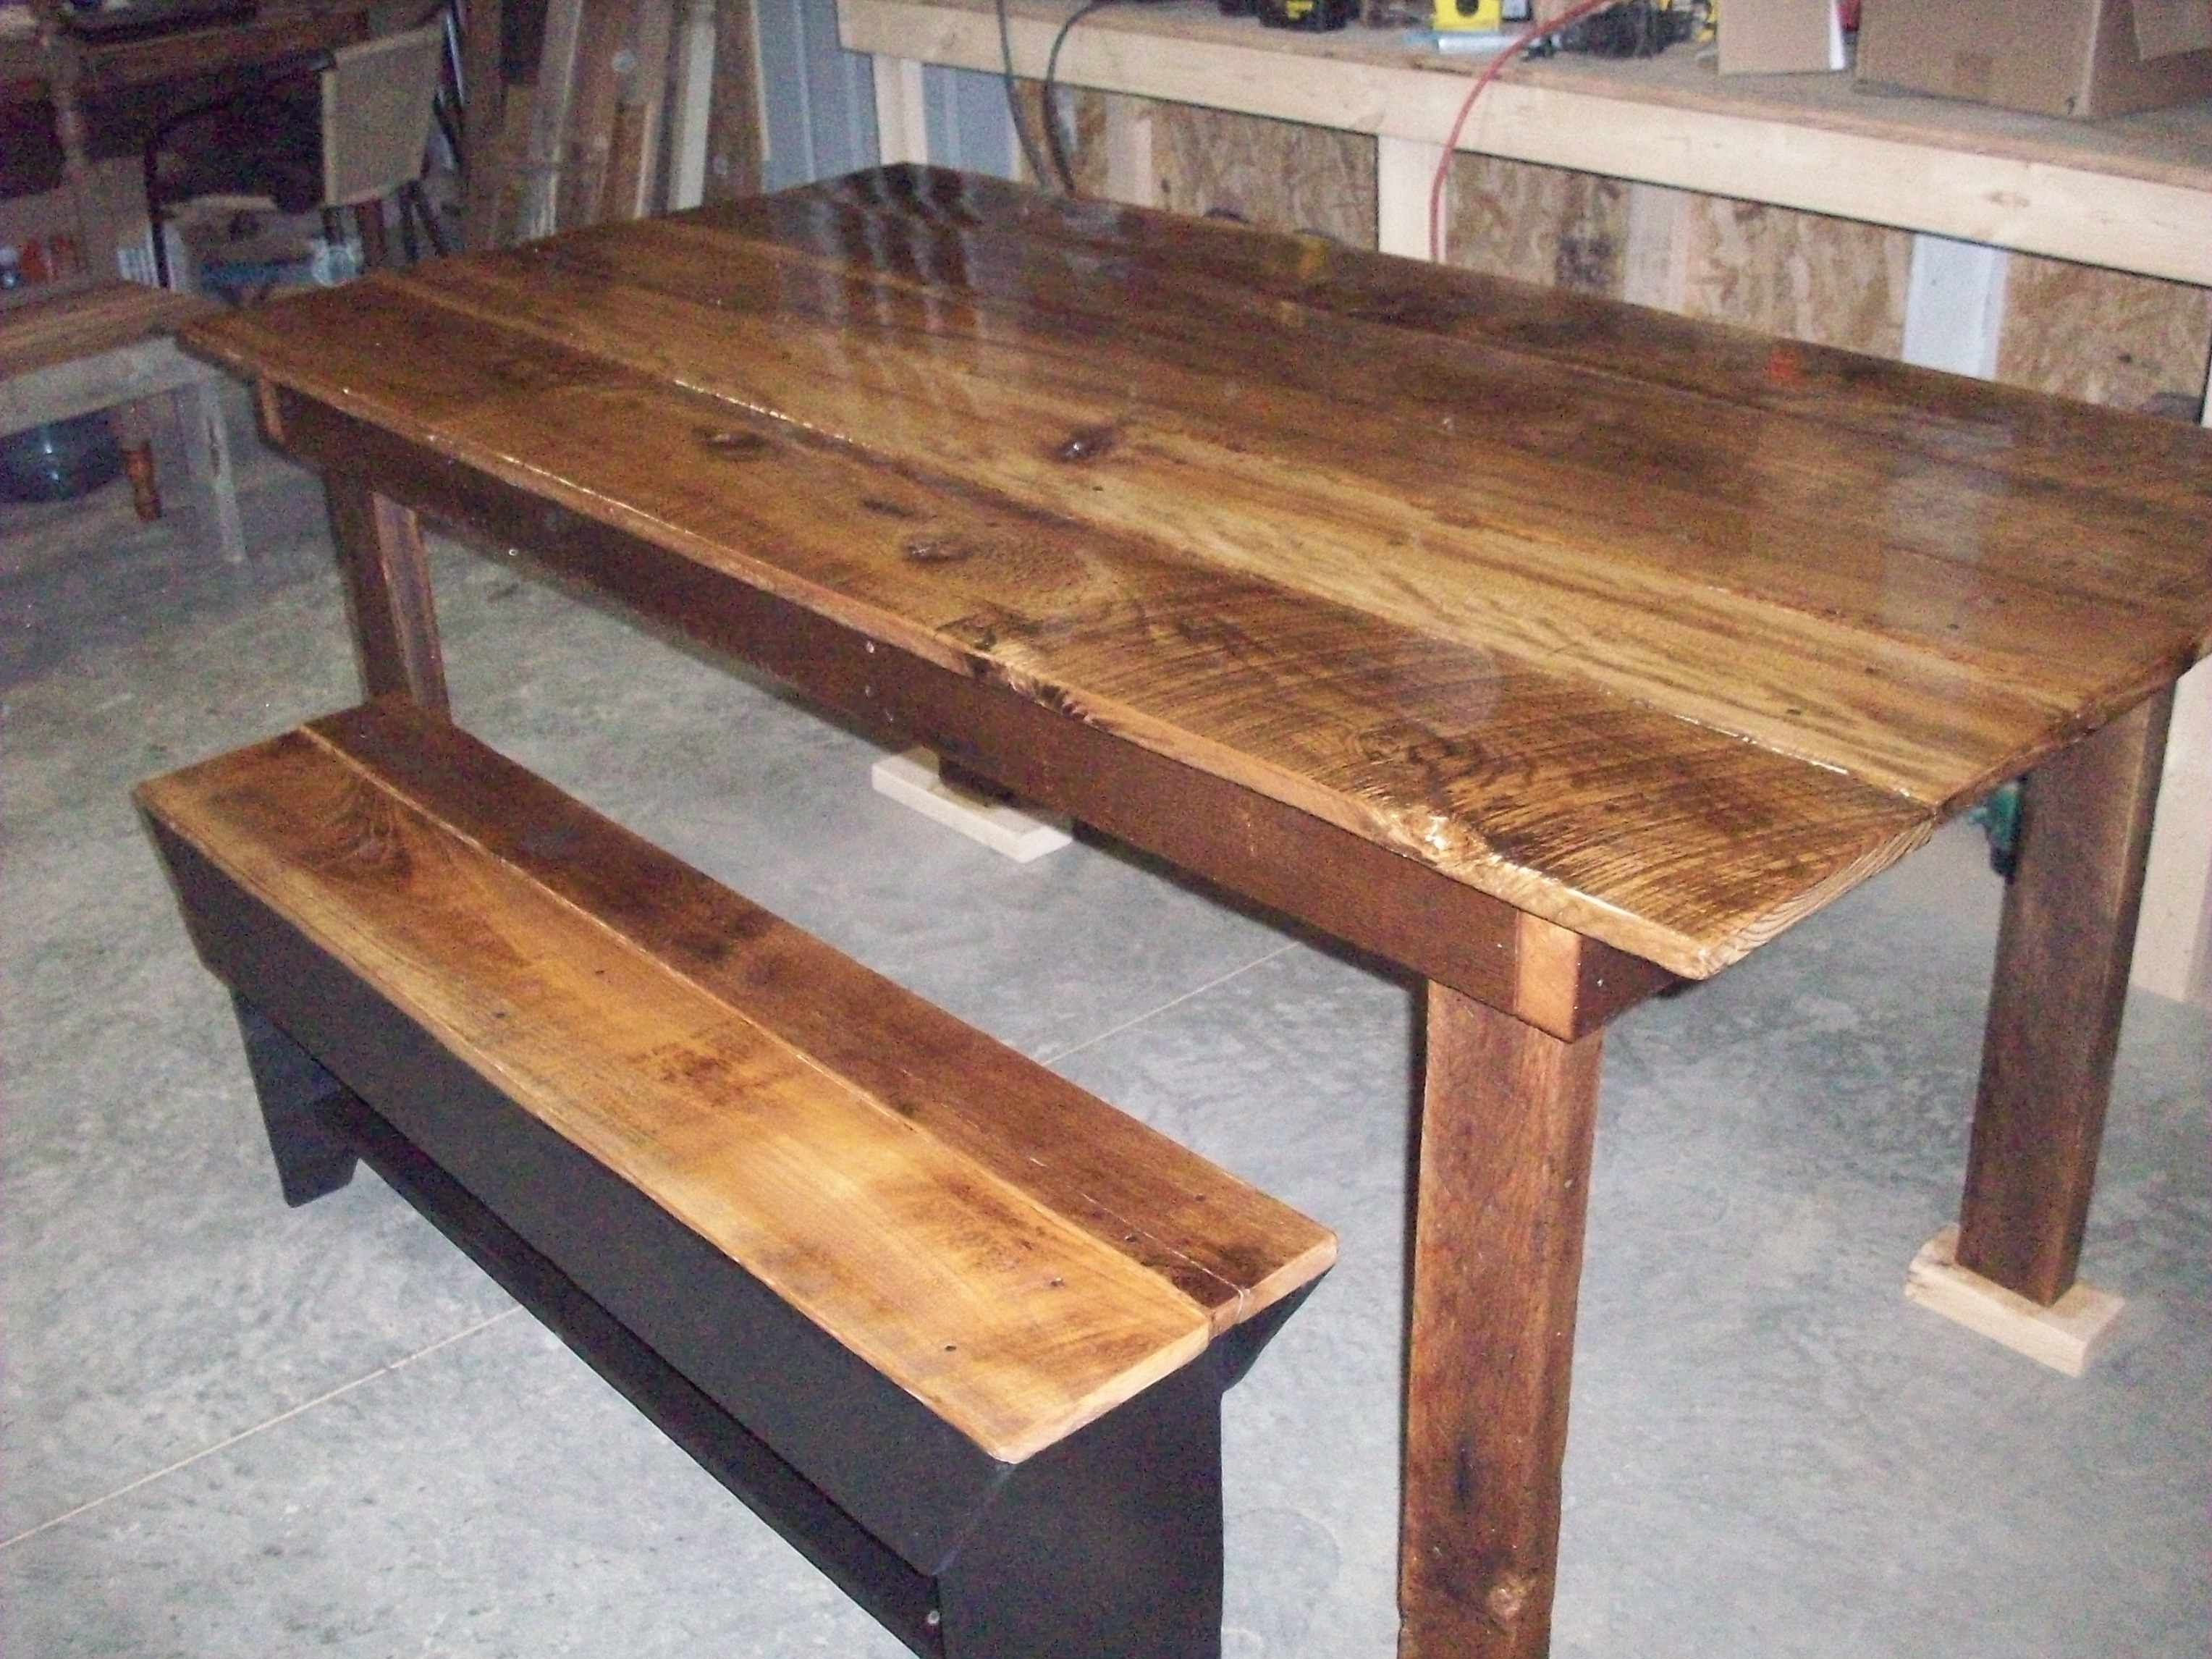 Strange Harvest Table Made With Barn Boards Benches Have Barn Board Alphanode Cool Chair Designs And Ideas Alphanodeonline